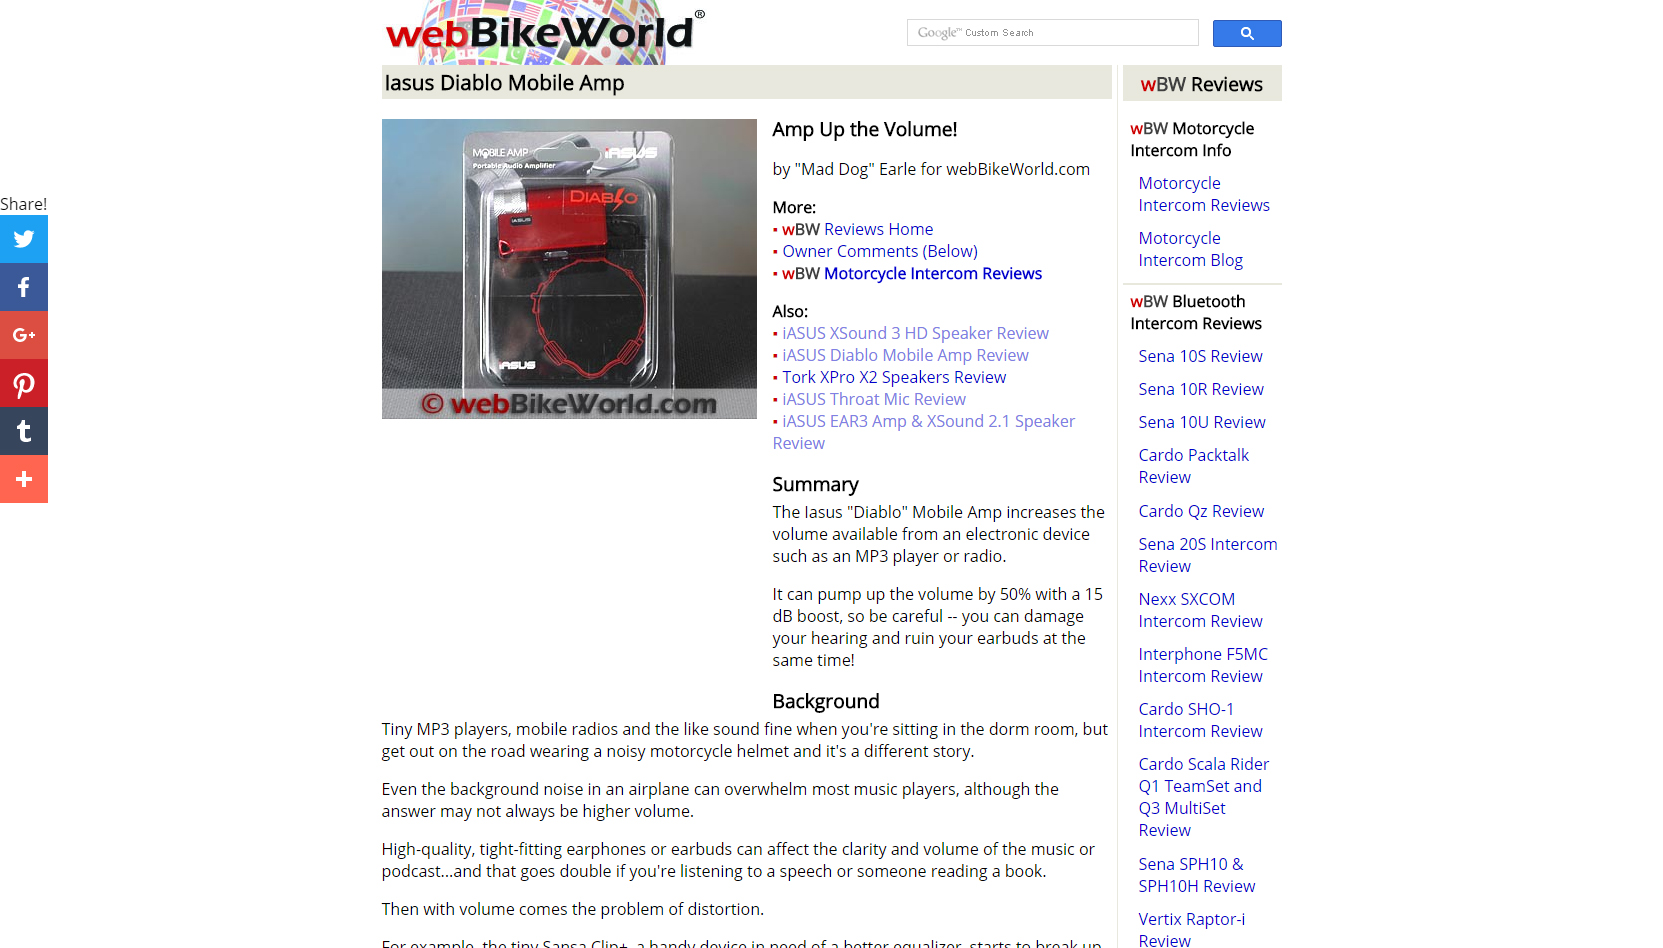 Diablo Mobile Amp on webBIKEWORLD